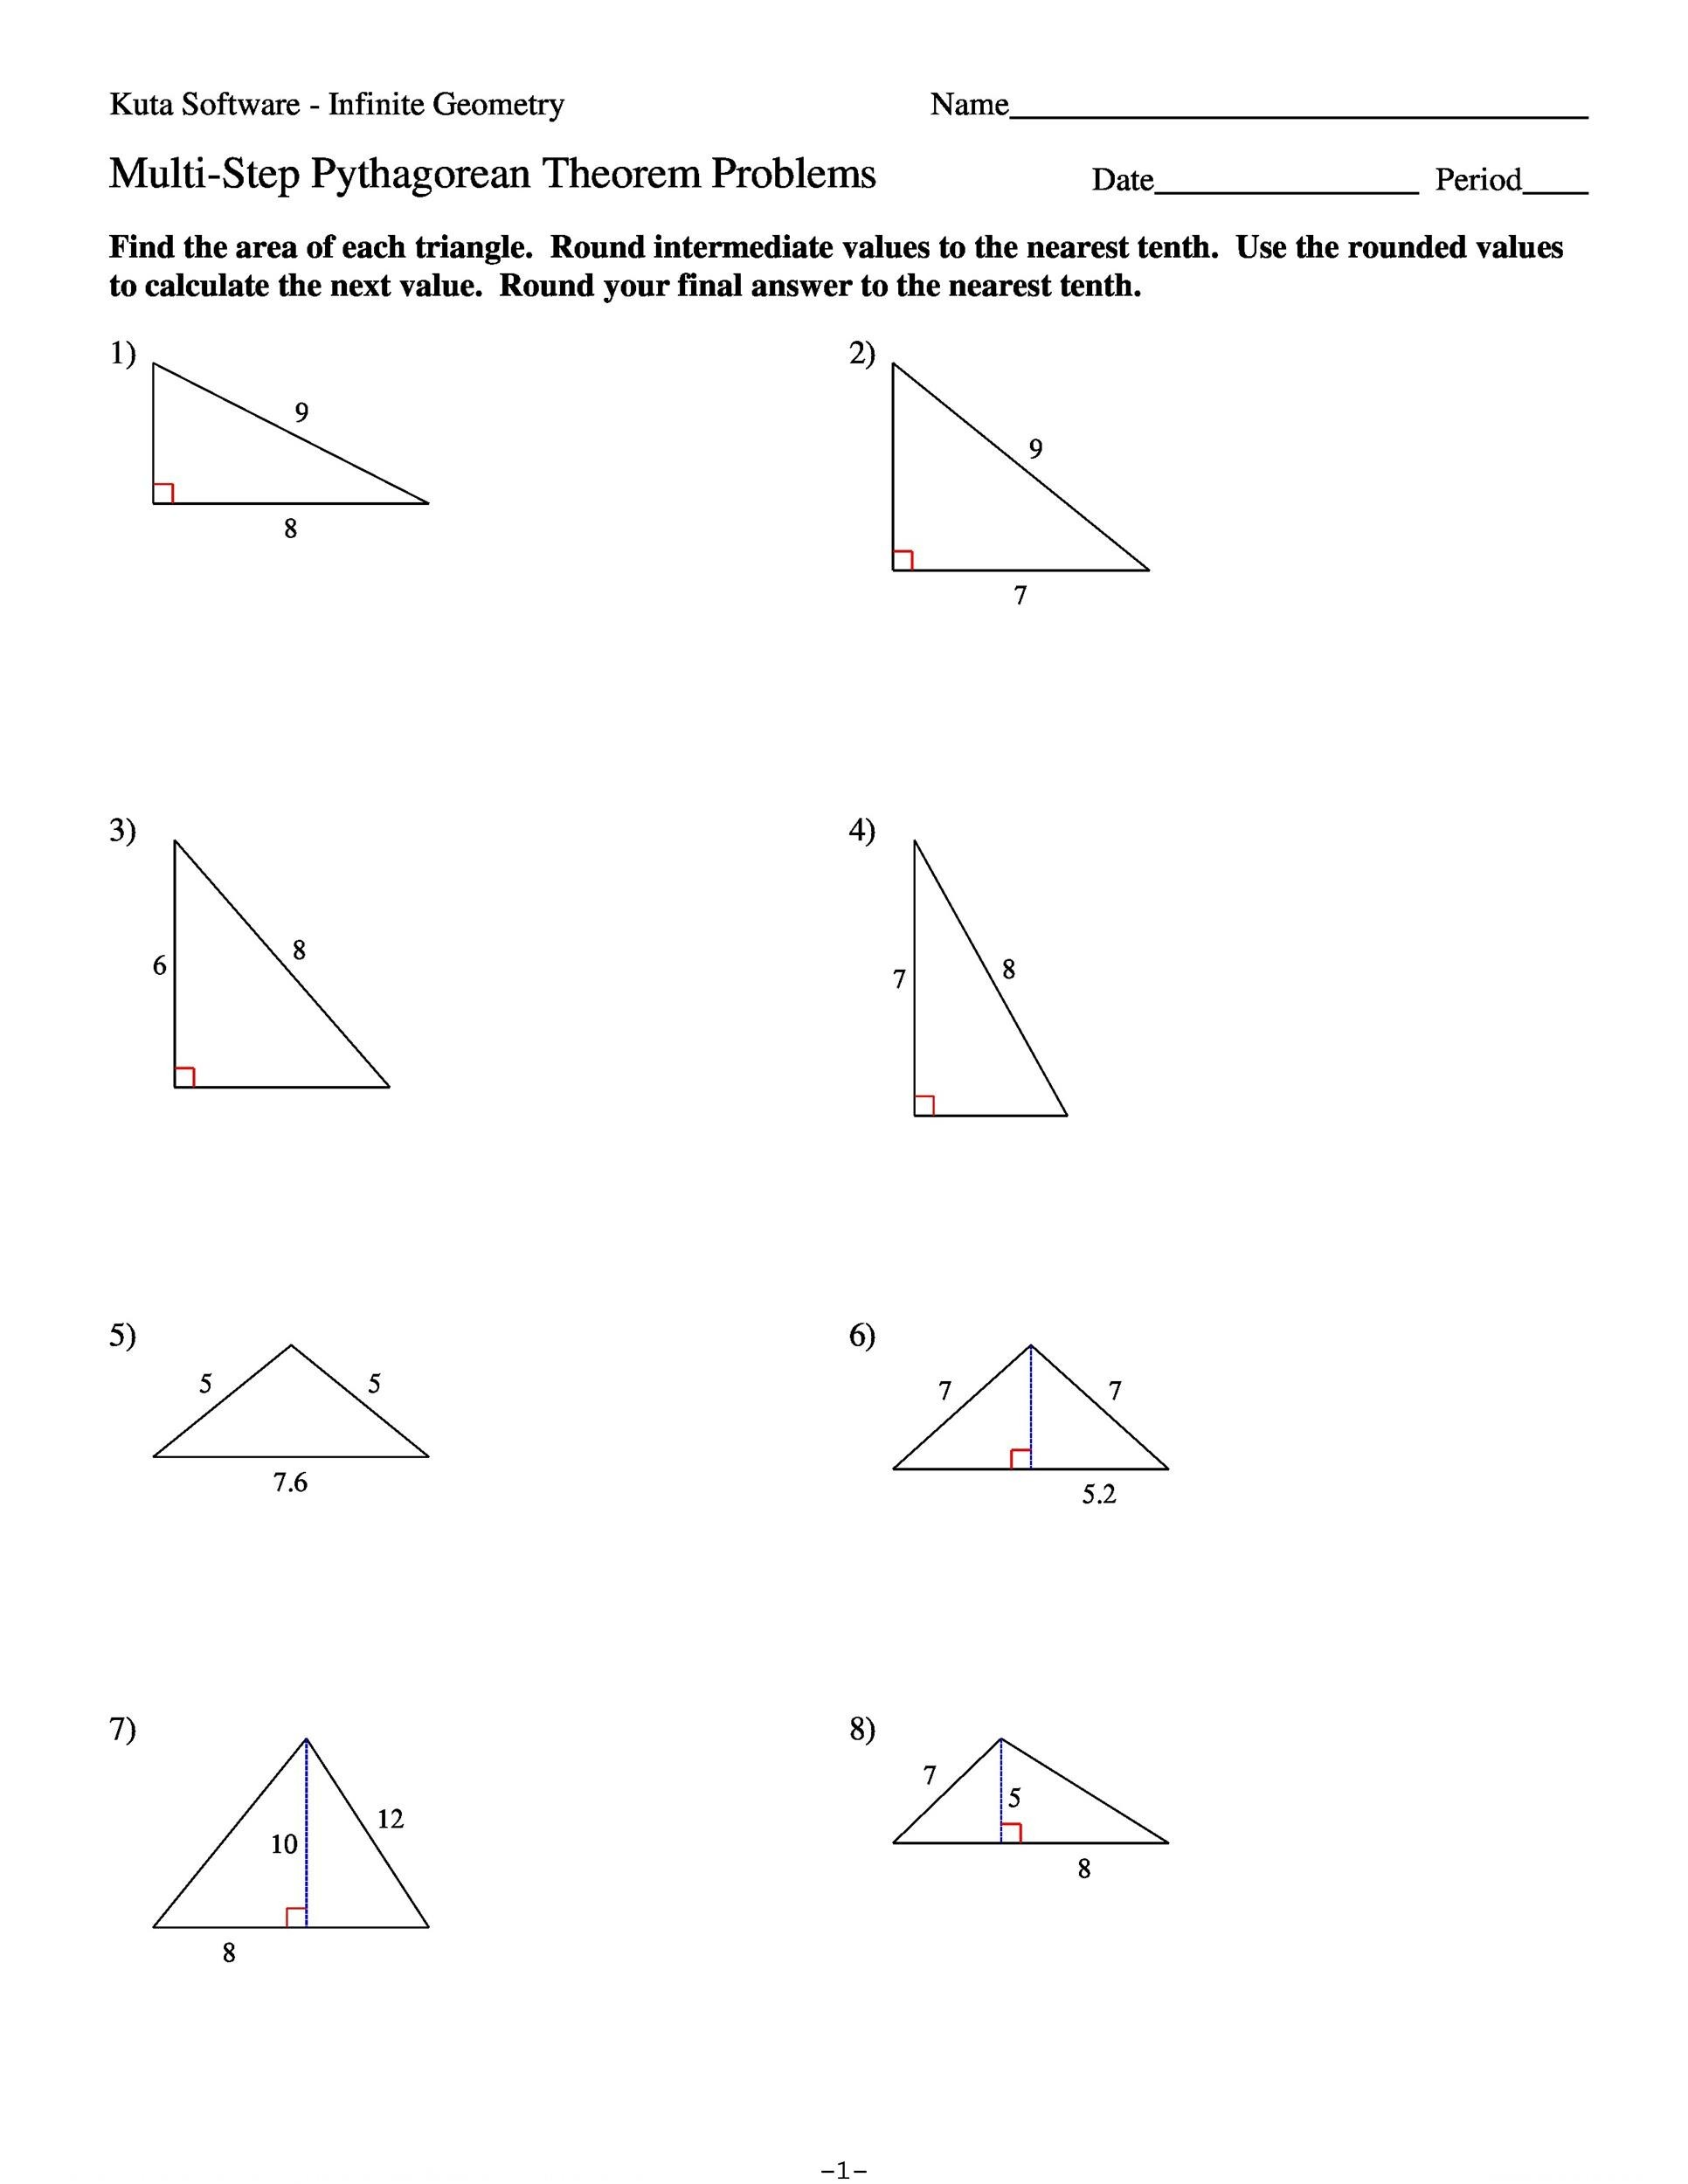 http://templatelab.com/wp-content/uploads/2017/01/pythagorean-theorem-08.jpg